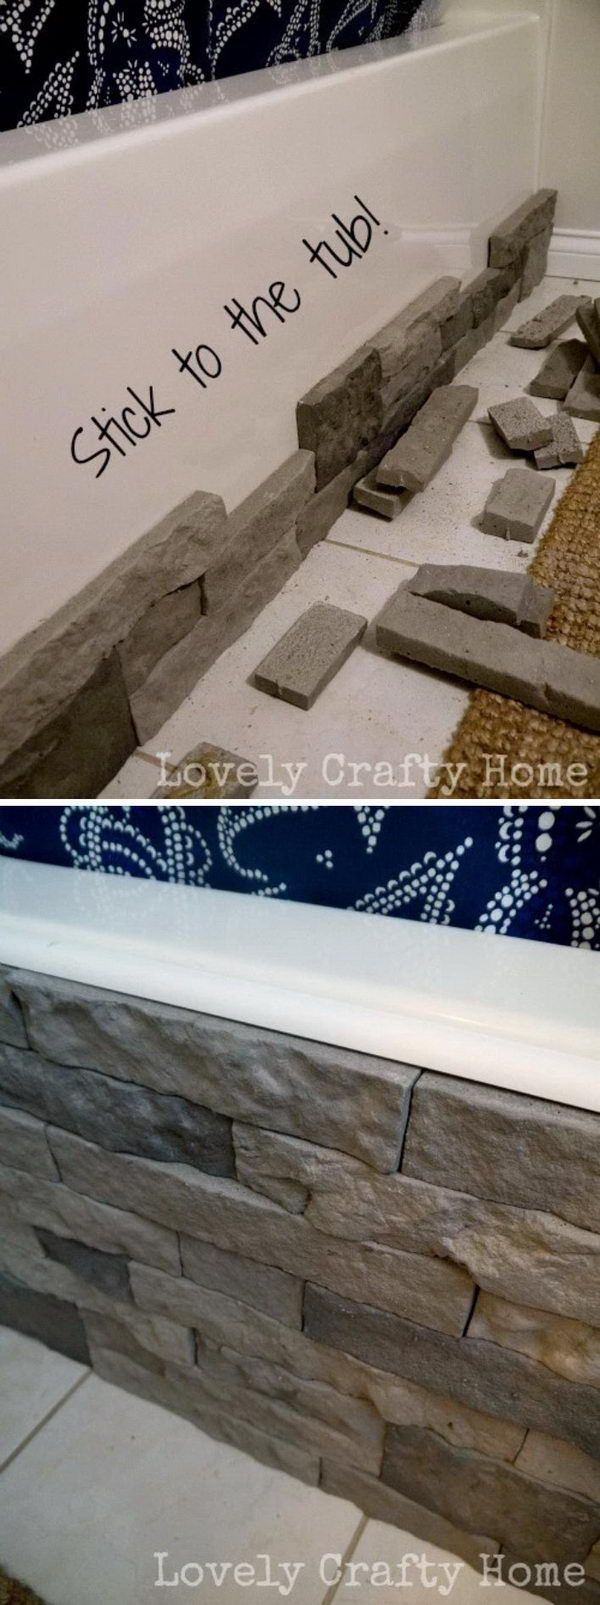 Cover an Ugly Bathtub With Faux Stone.